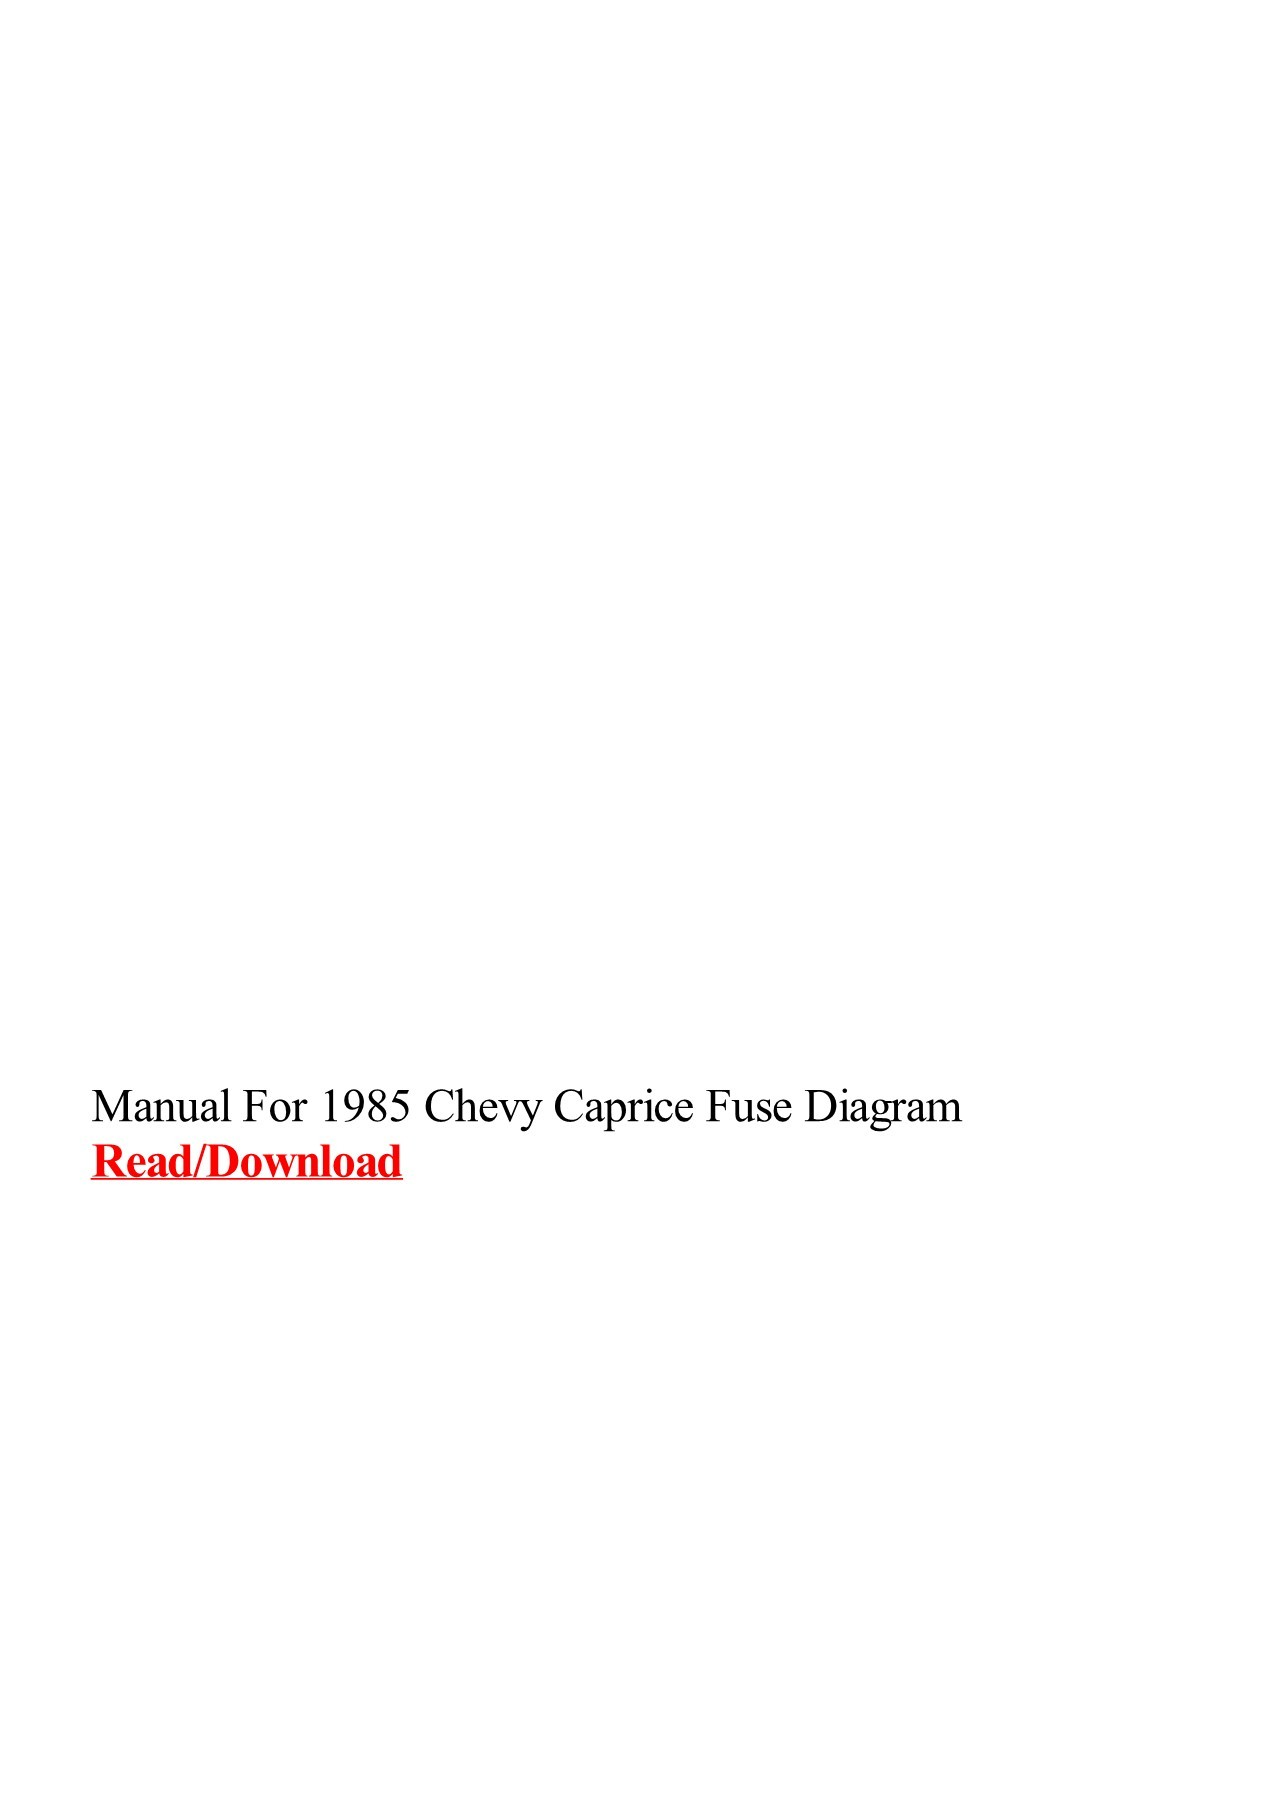 hight resolution of manual for 1985 chevy caprice fuse diagram pages 1 3 text version fliphtml5